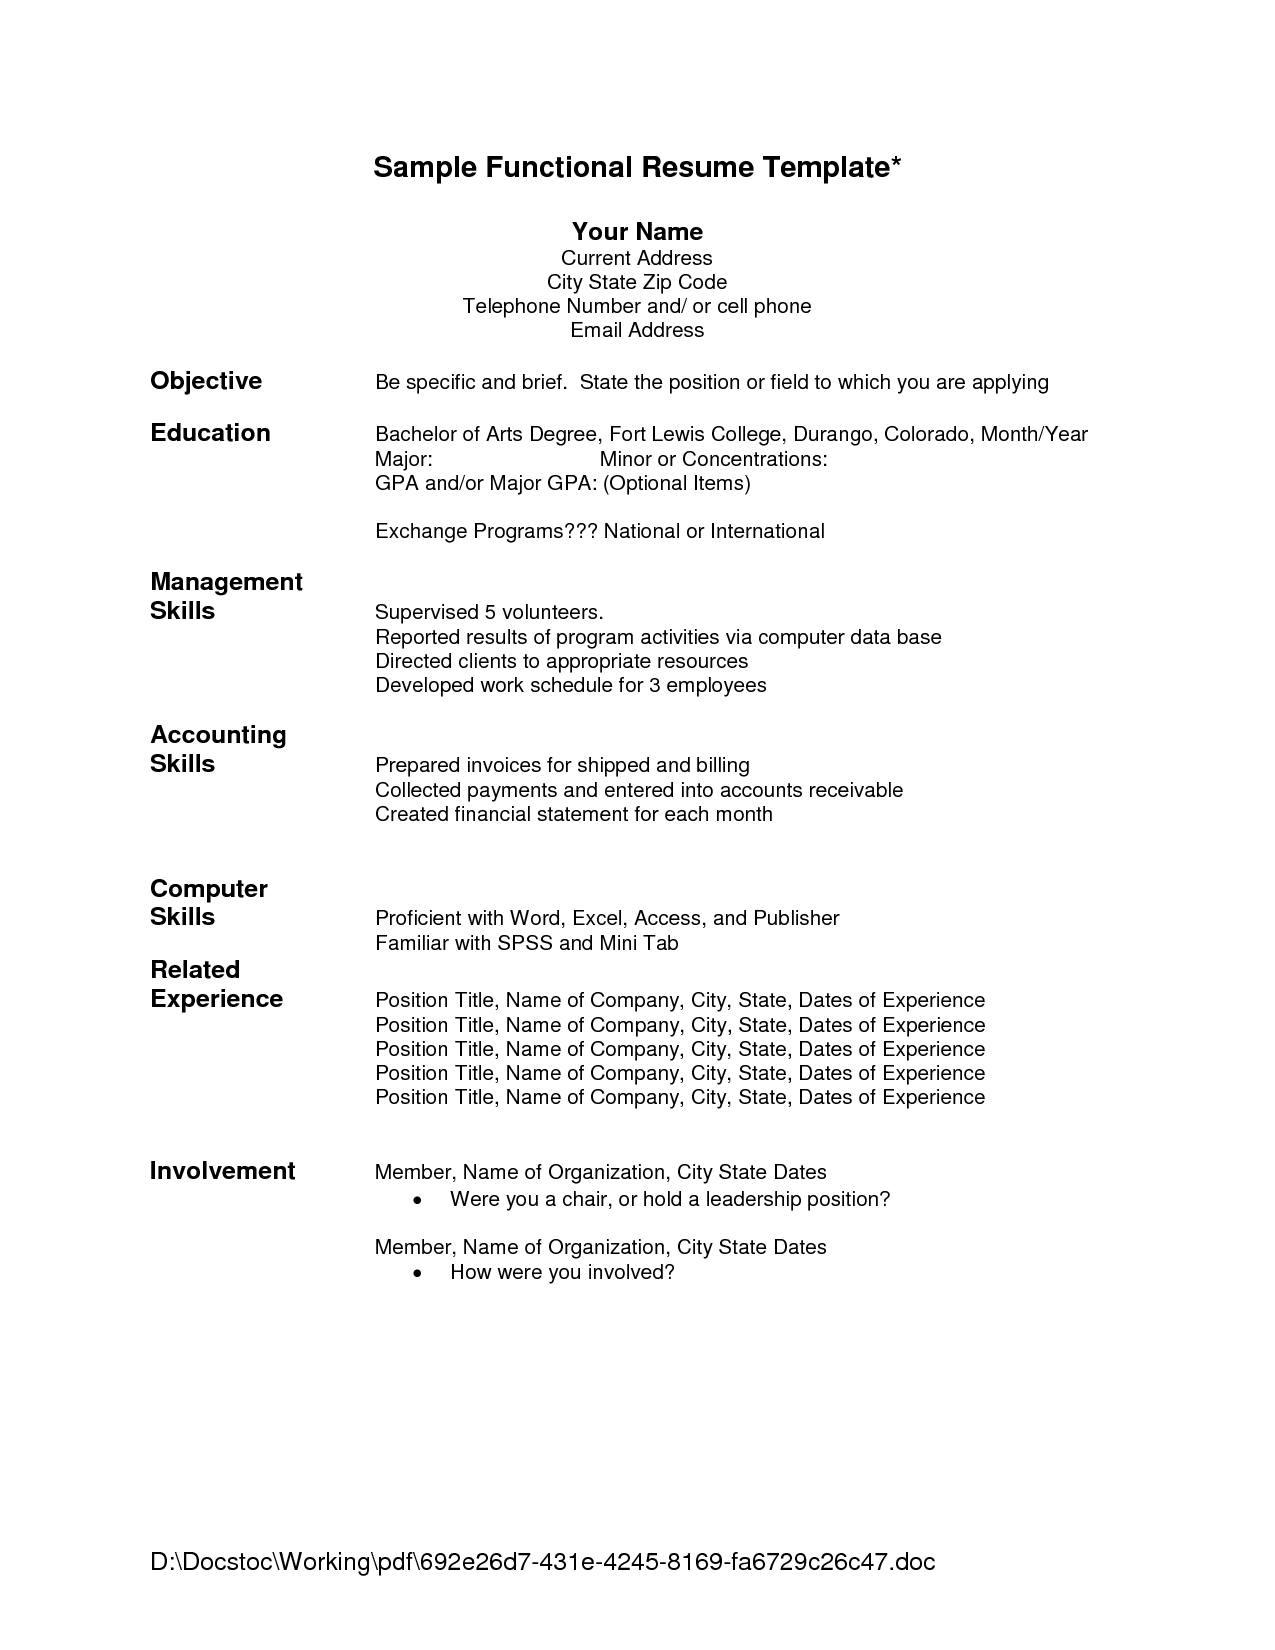 Resume Education Example Endearing Sample One Page Functional Resume  Google Search  Resumes Inspiration